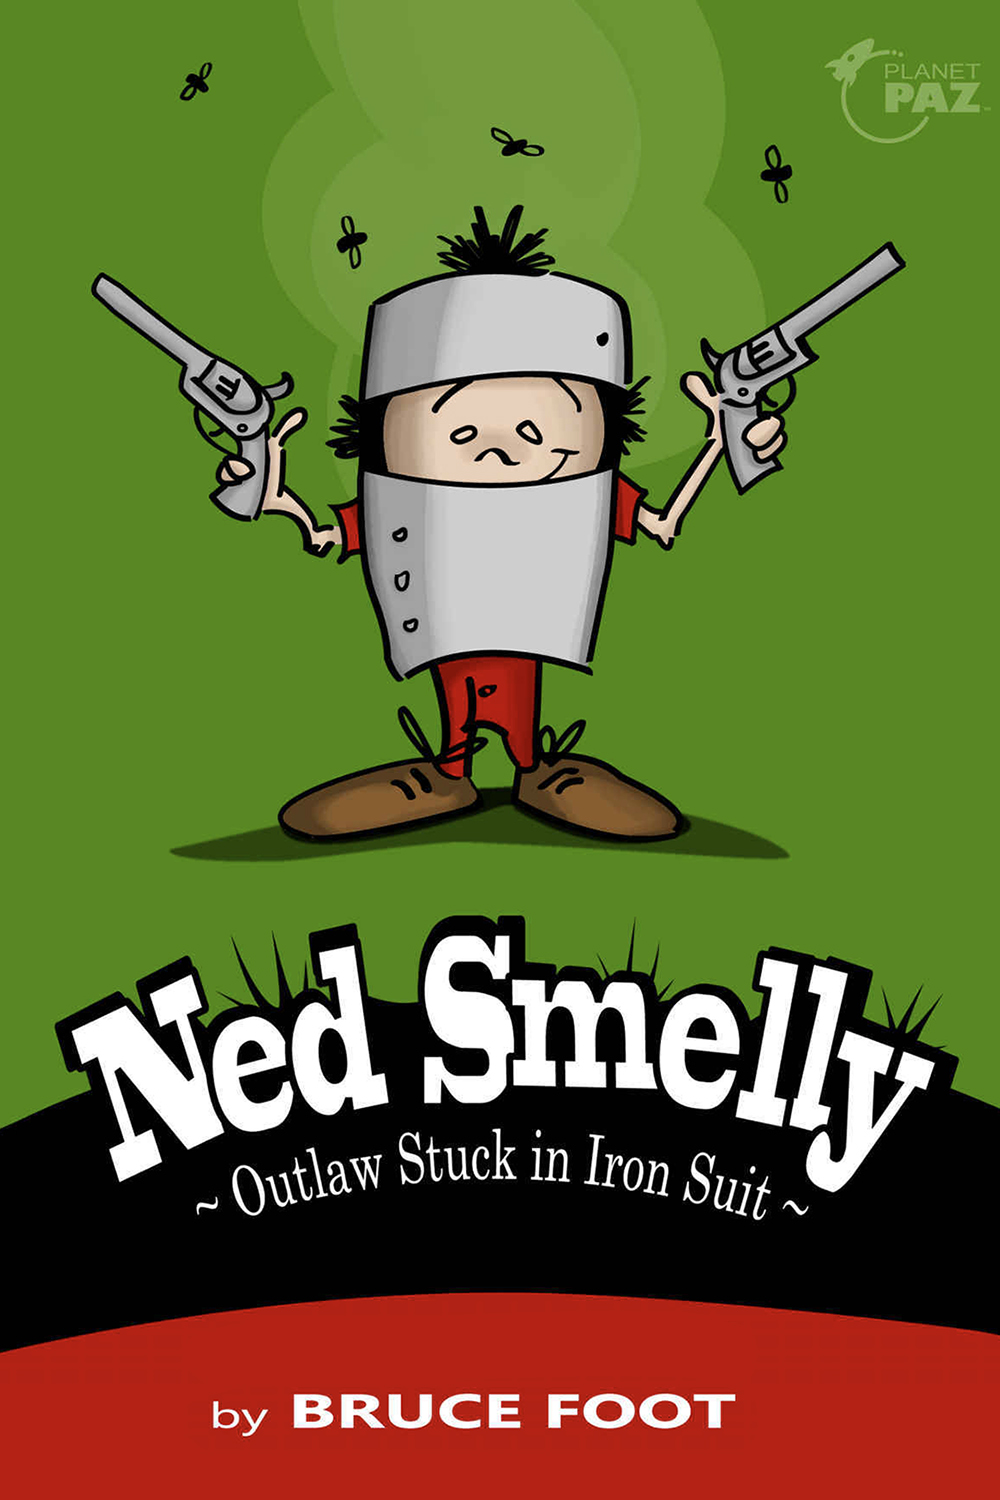 Ned Smelly: Outlaw Stuck in Iron Suit by Bruce Foot